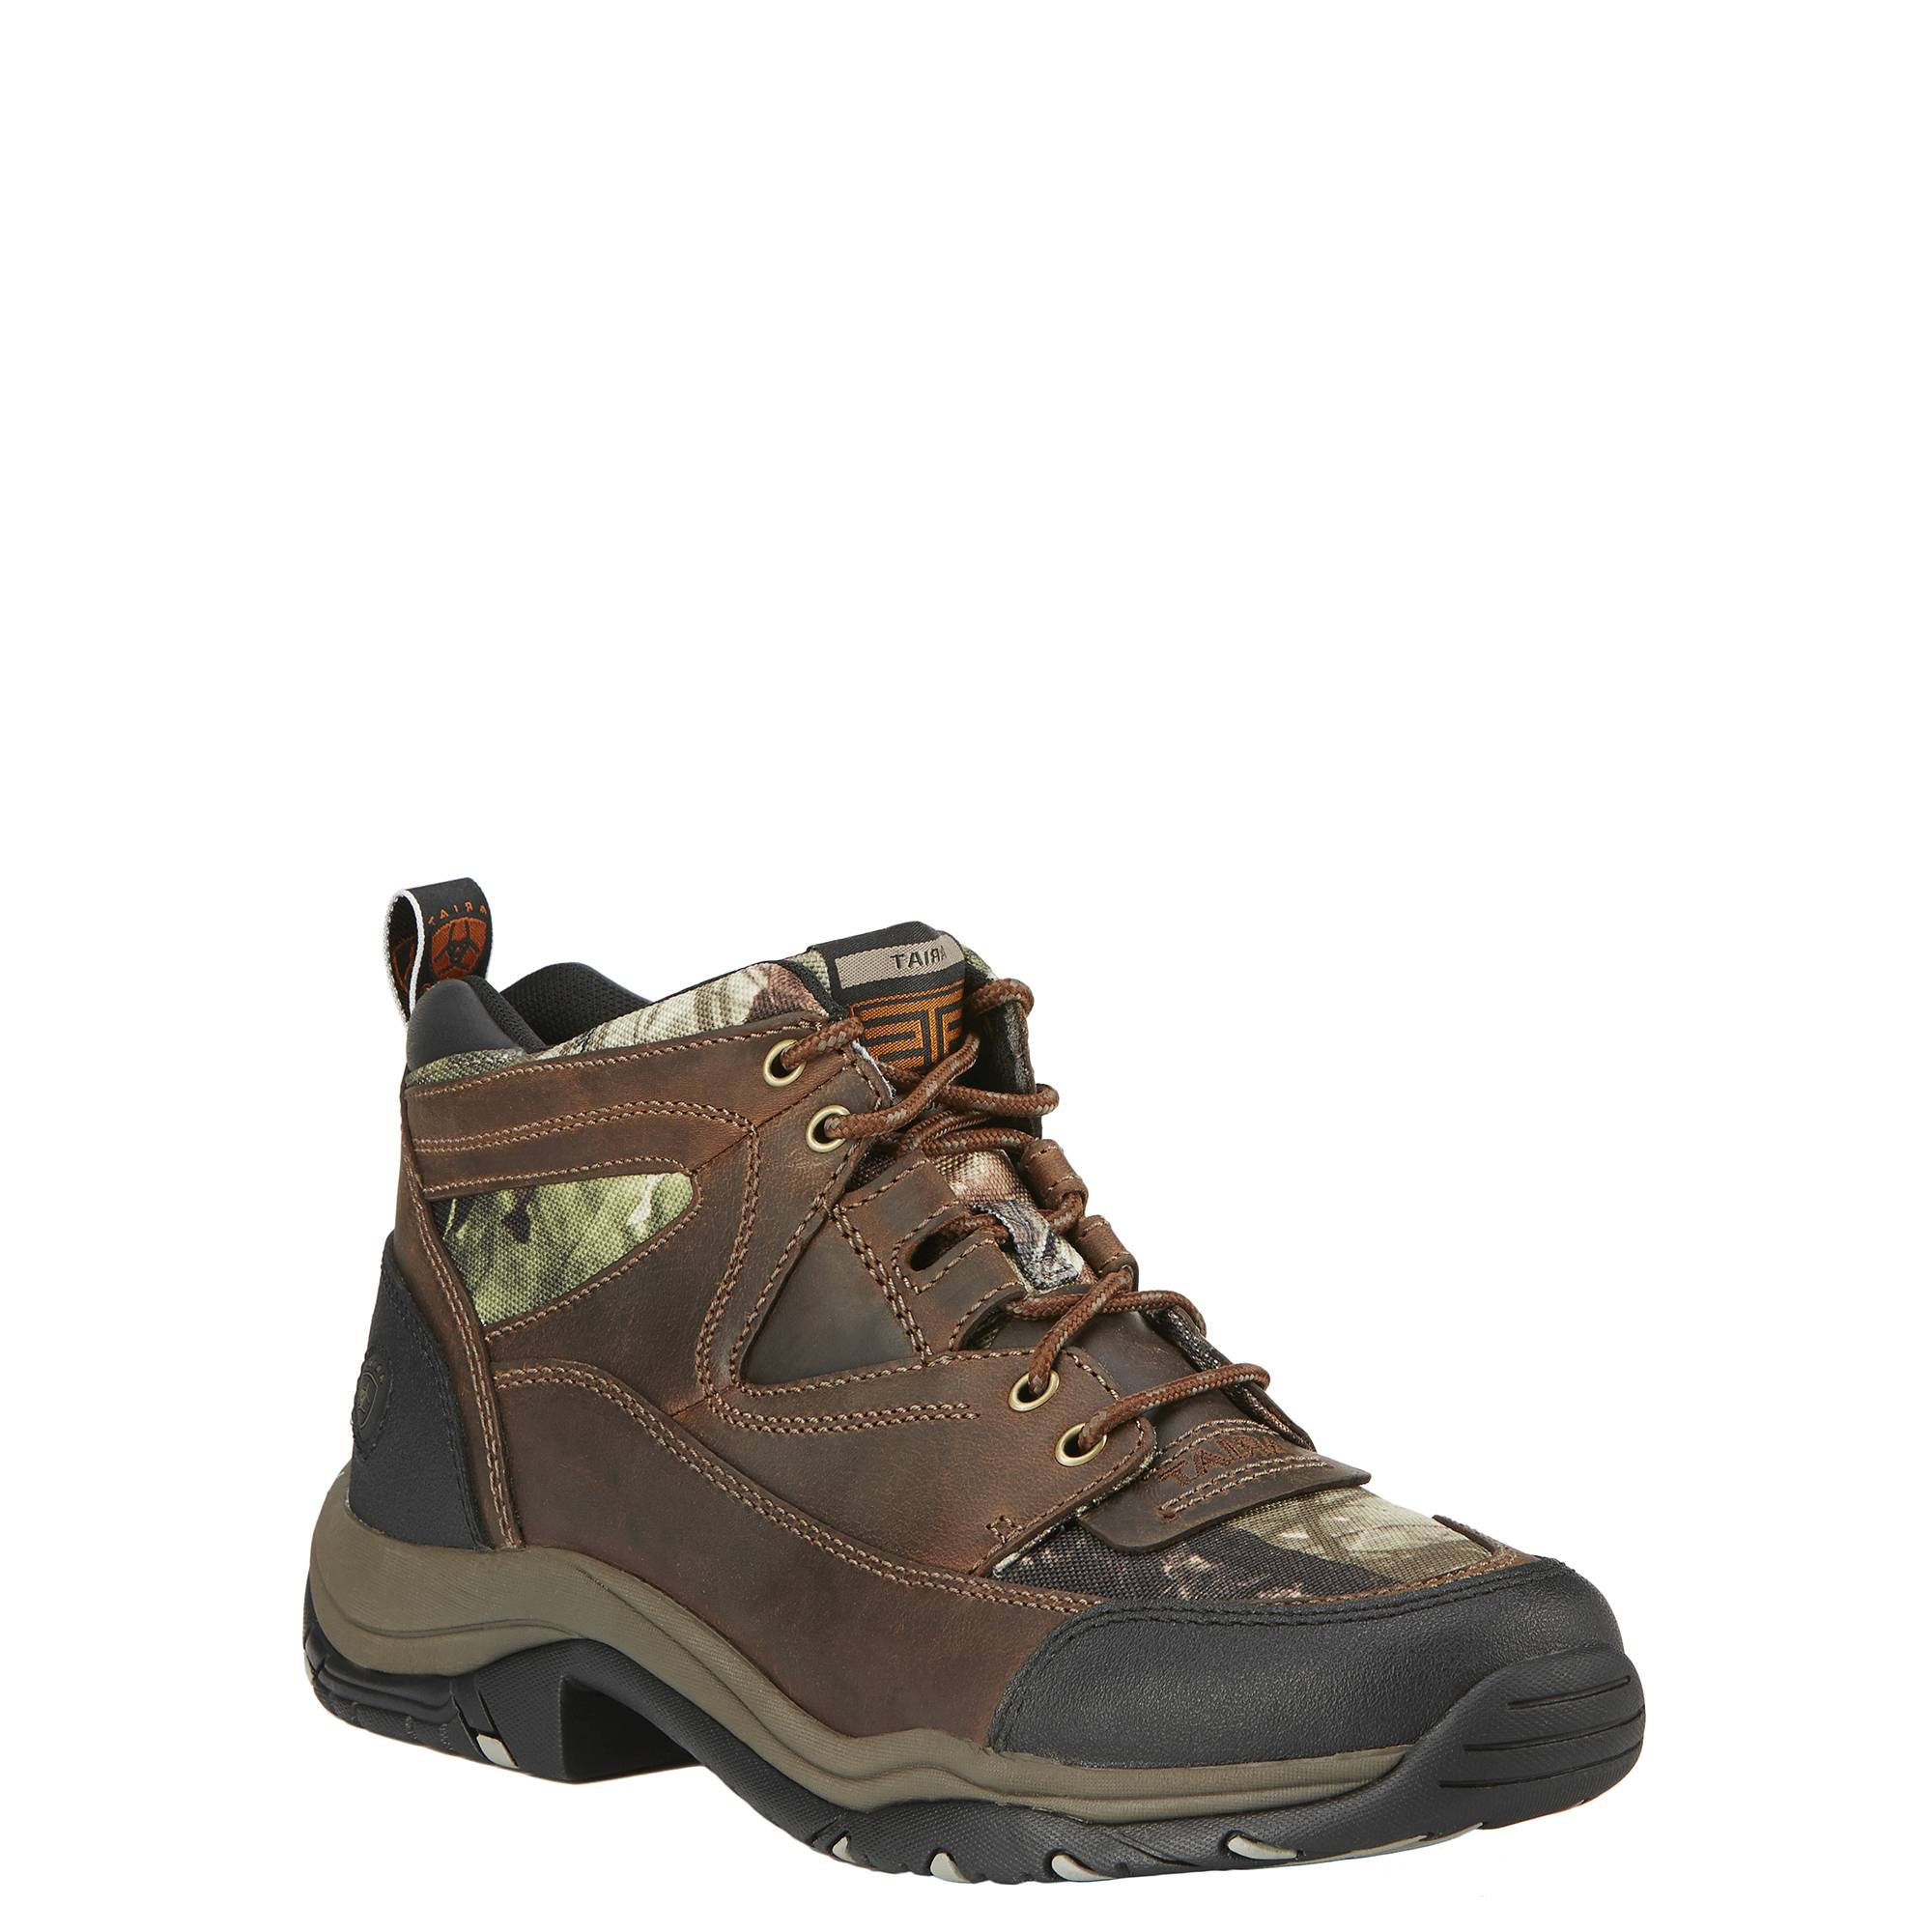 ARIAT Men's Terrain